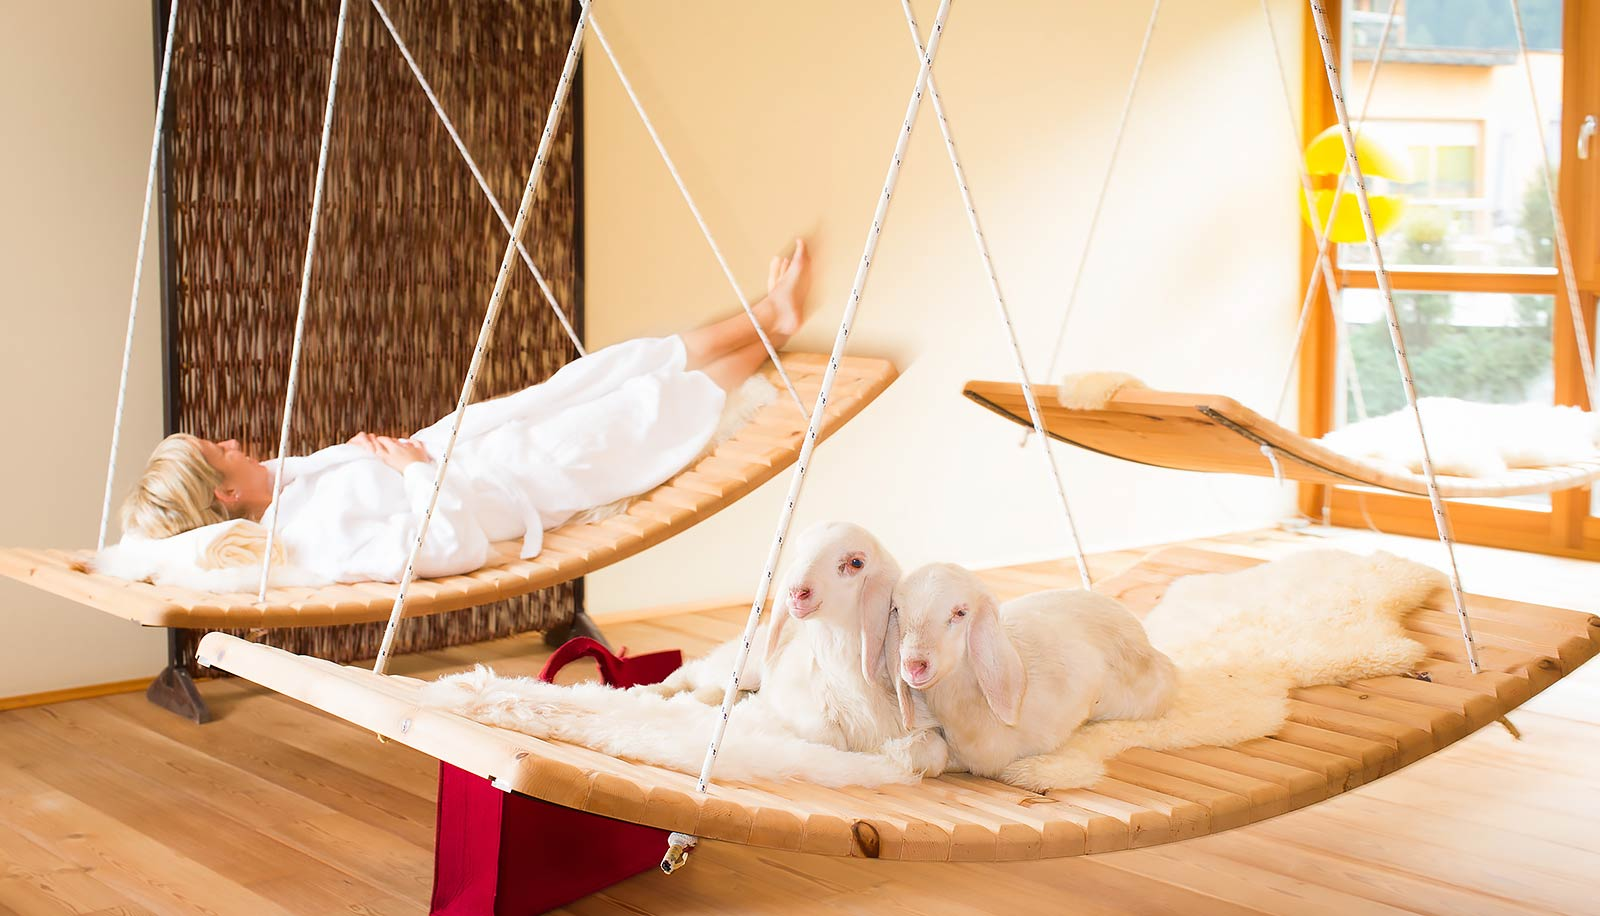 Suspended wooden lounge beds at Arosea Life Balance Hotel in Ultental-Val d'Ultimo in which a woman and two lambs are resting